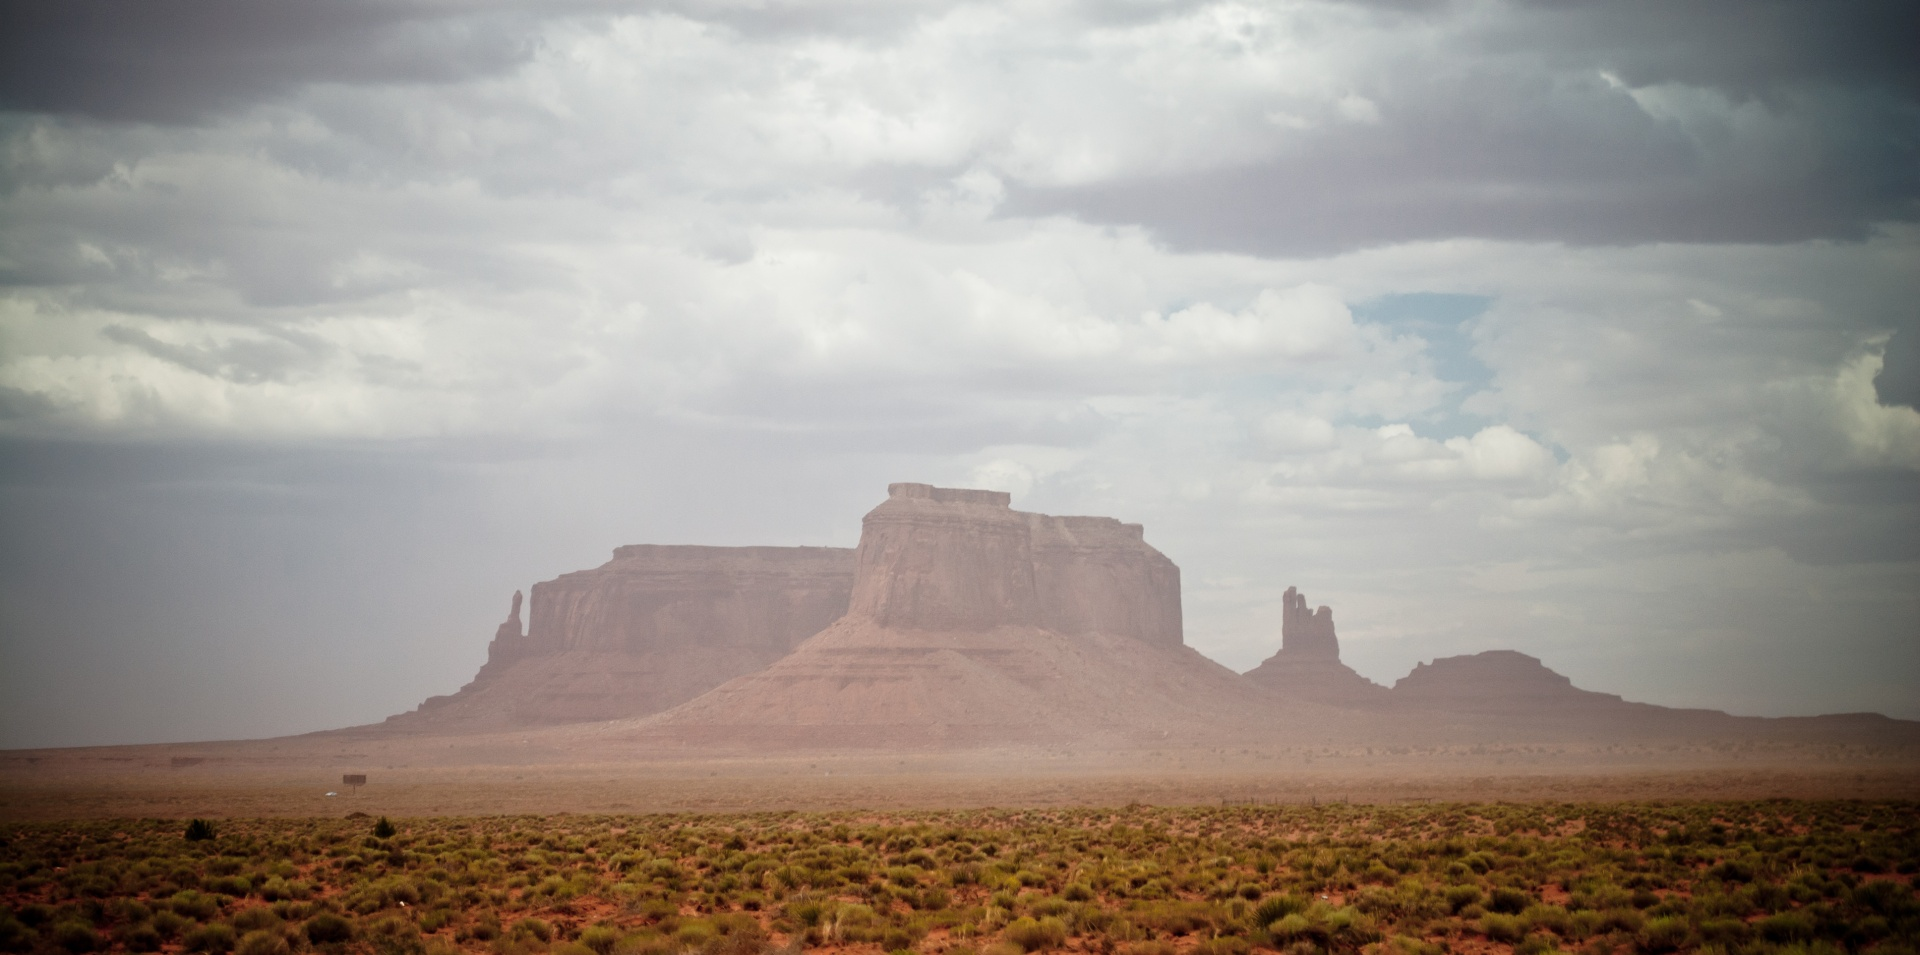 tornado map usa with Usa Trip 2012 Monument Valley Navajo Tribal Park Arizona on Watch likewise Art furthermore Photos in addition Nuclear Plants Risk Us besides Tornado Alley La Pista Di Atteraggio Dei Tornado 62048.